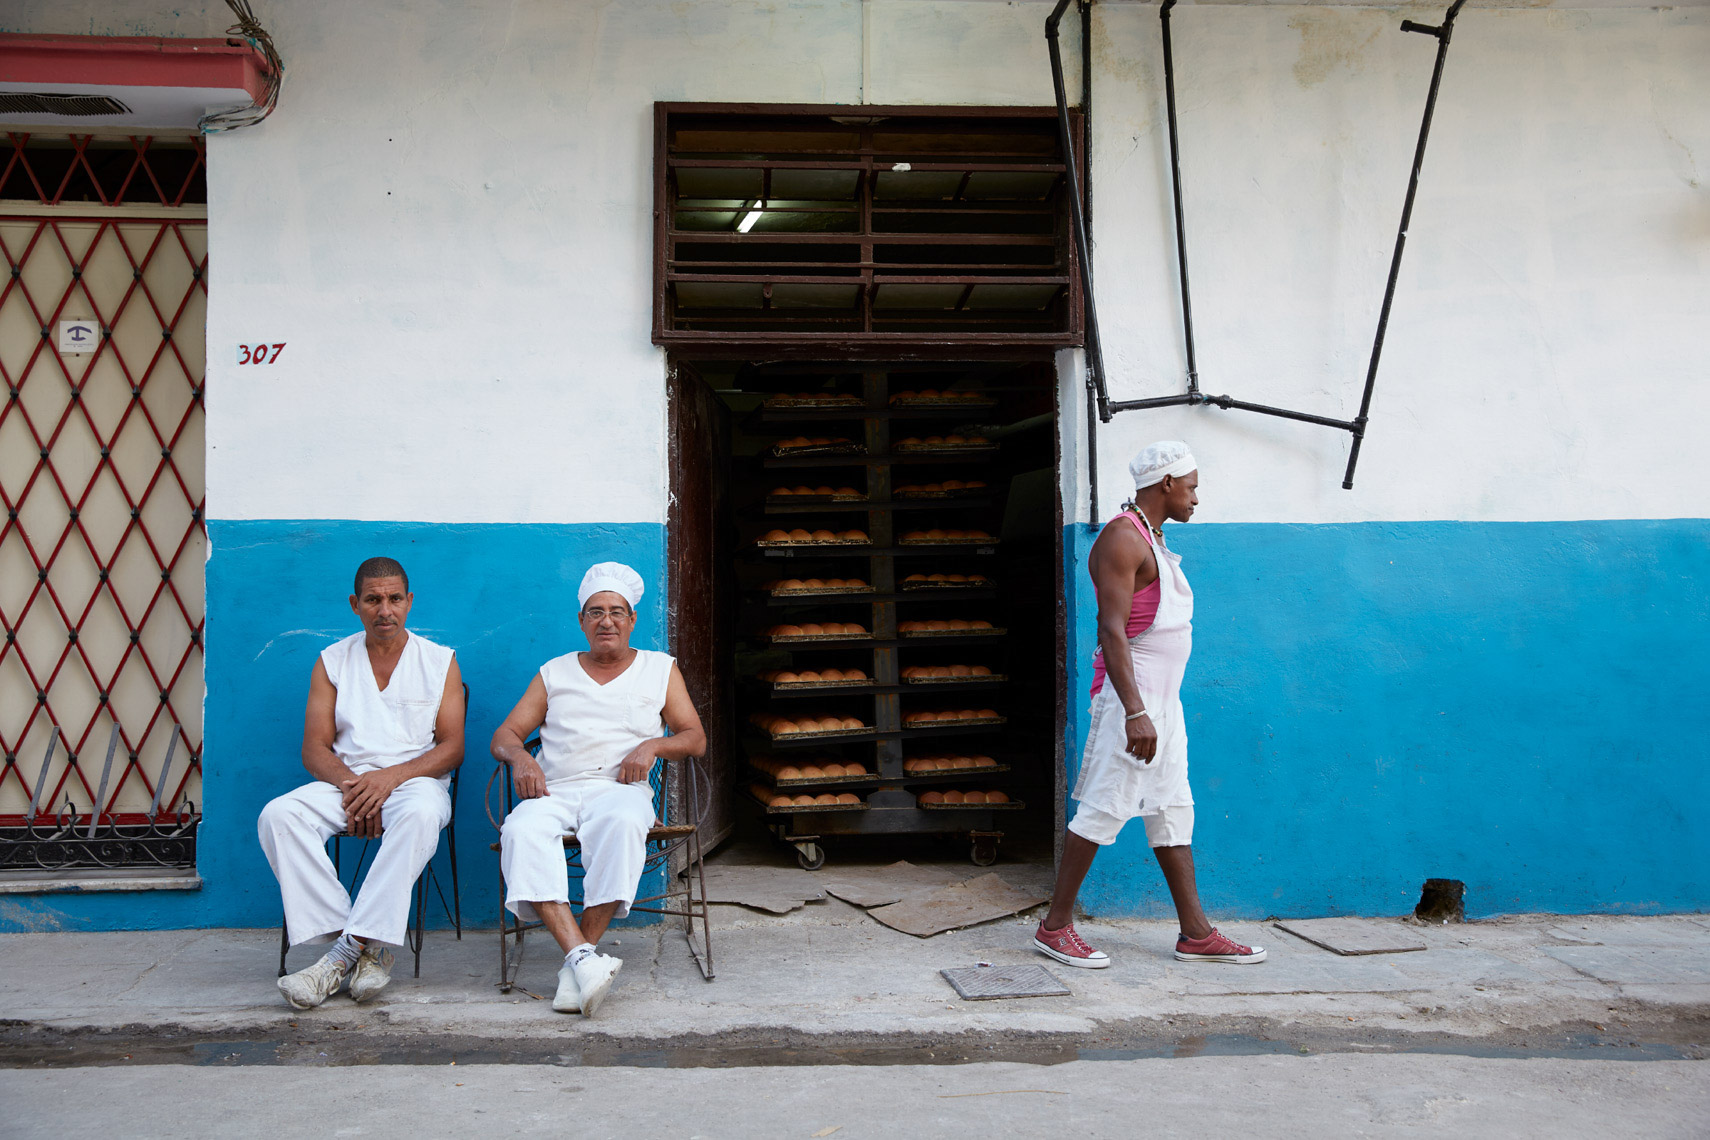 3 chefs outside bakery with white and blue walls in Cuba